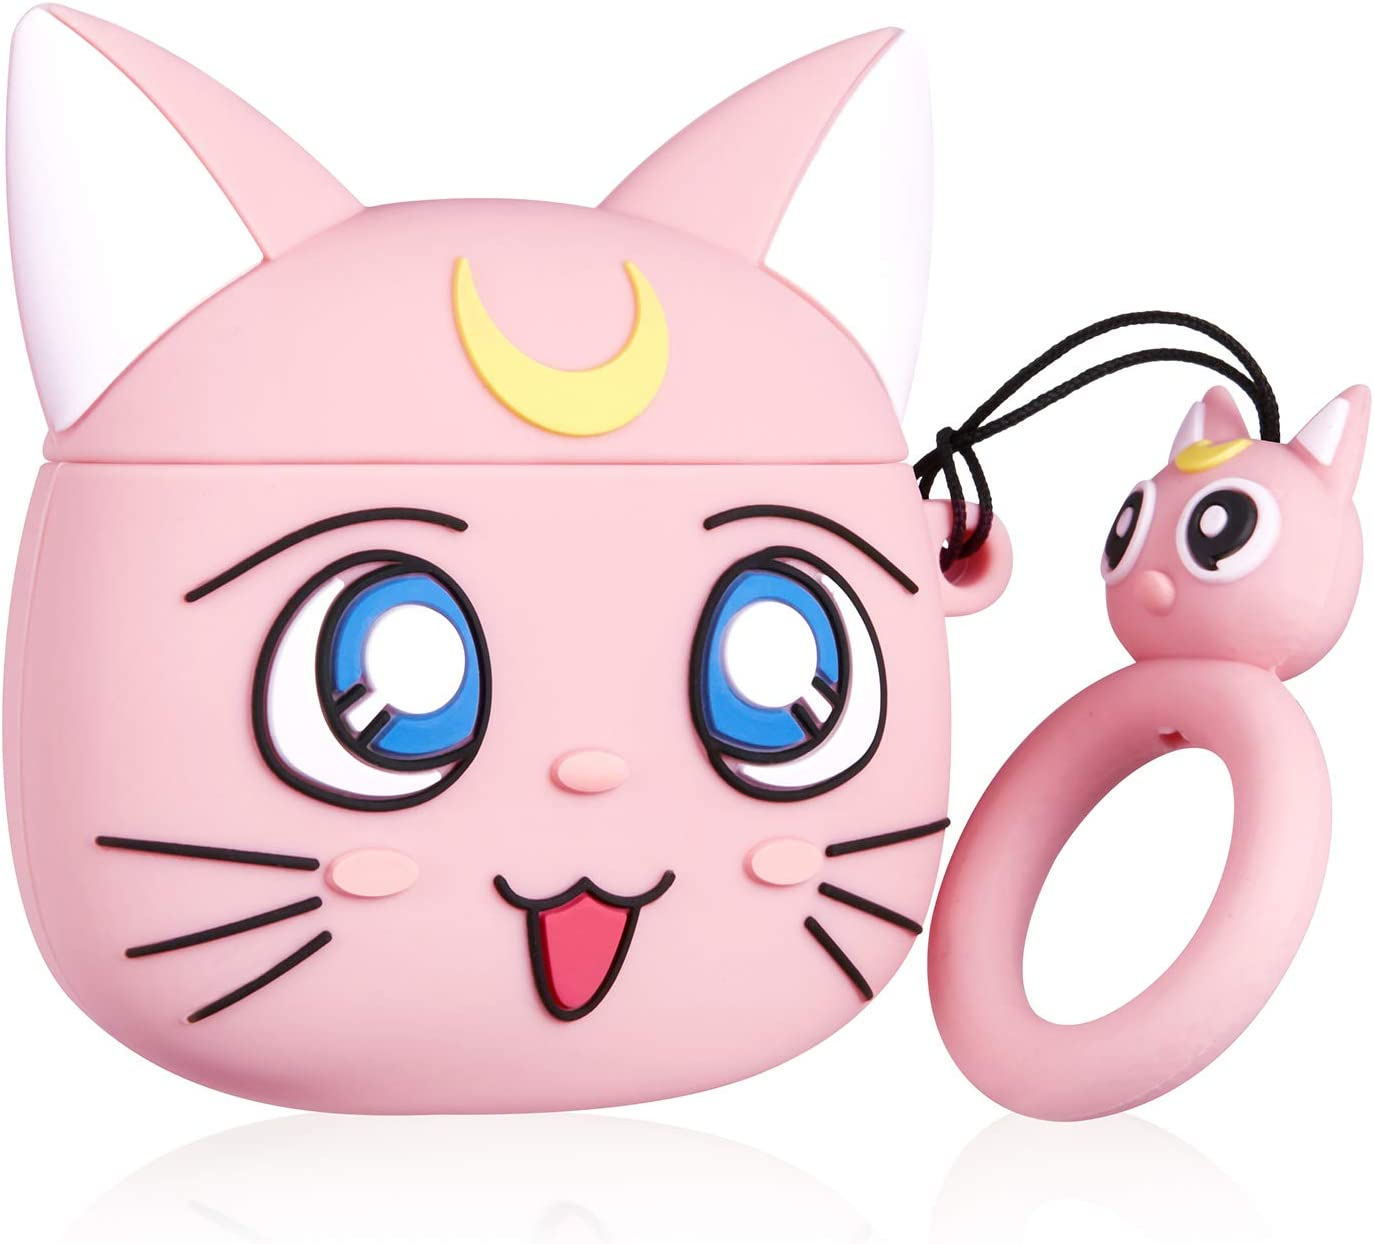 Jowhep Case for AirPod 2/1 Cartoon Design Cute Silicone Cover with Keychain Fashion Funny Shockproof Soft Protective Skin for Air Pods Girls Kids Kawaii Food Shell Cases for AirPods 1/2 Pink Luna Cat